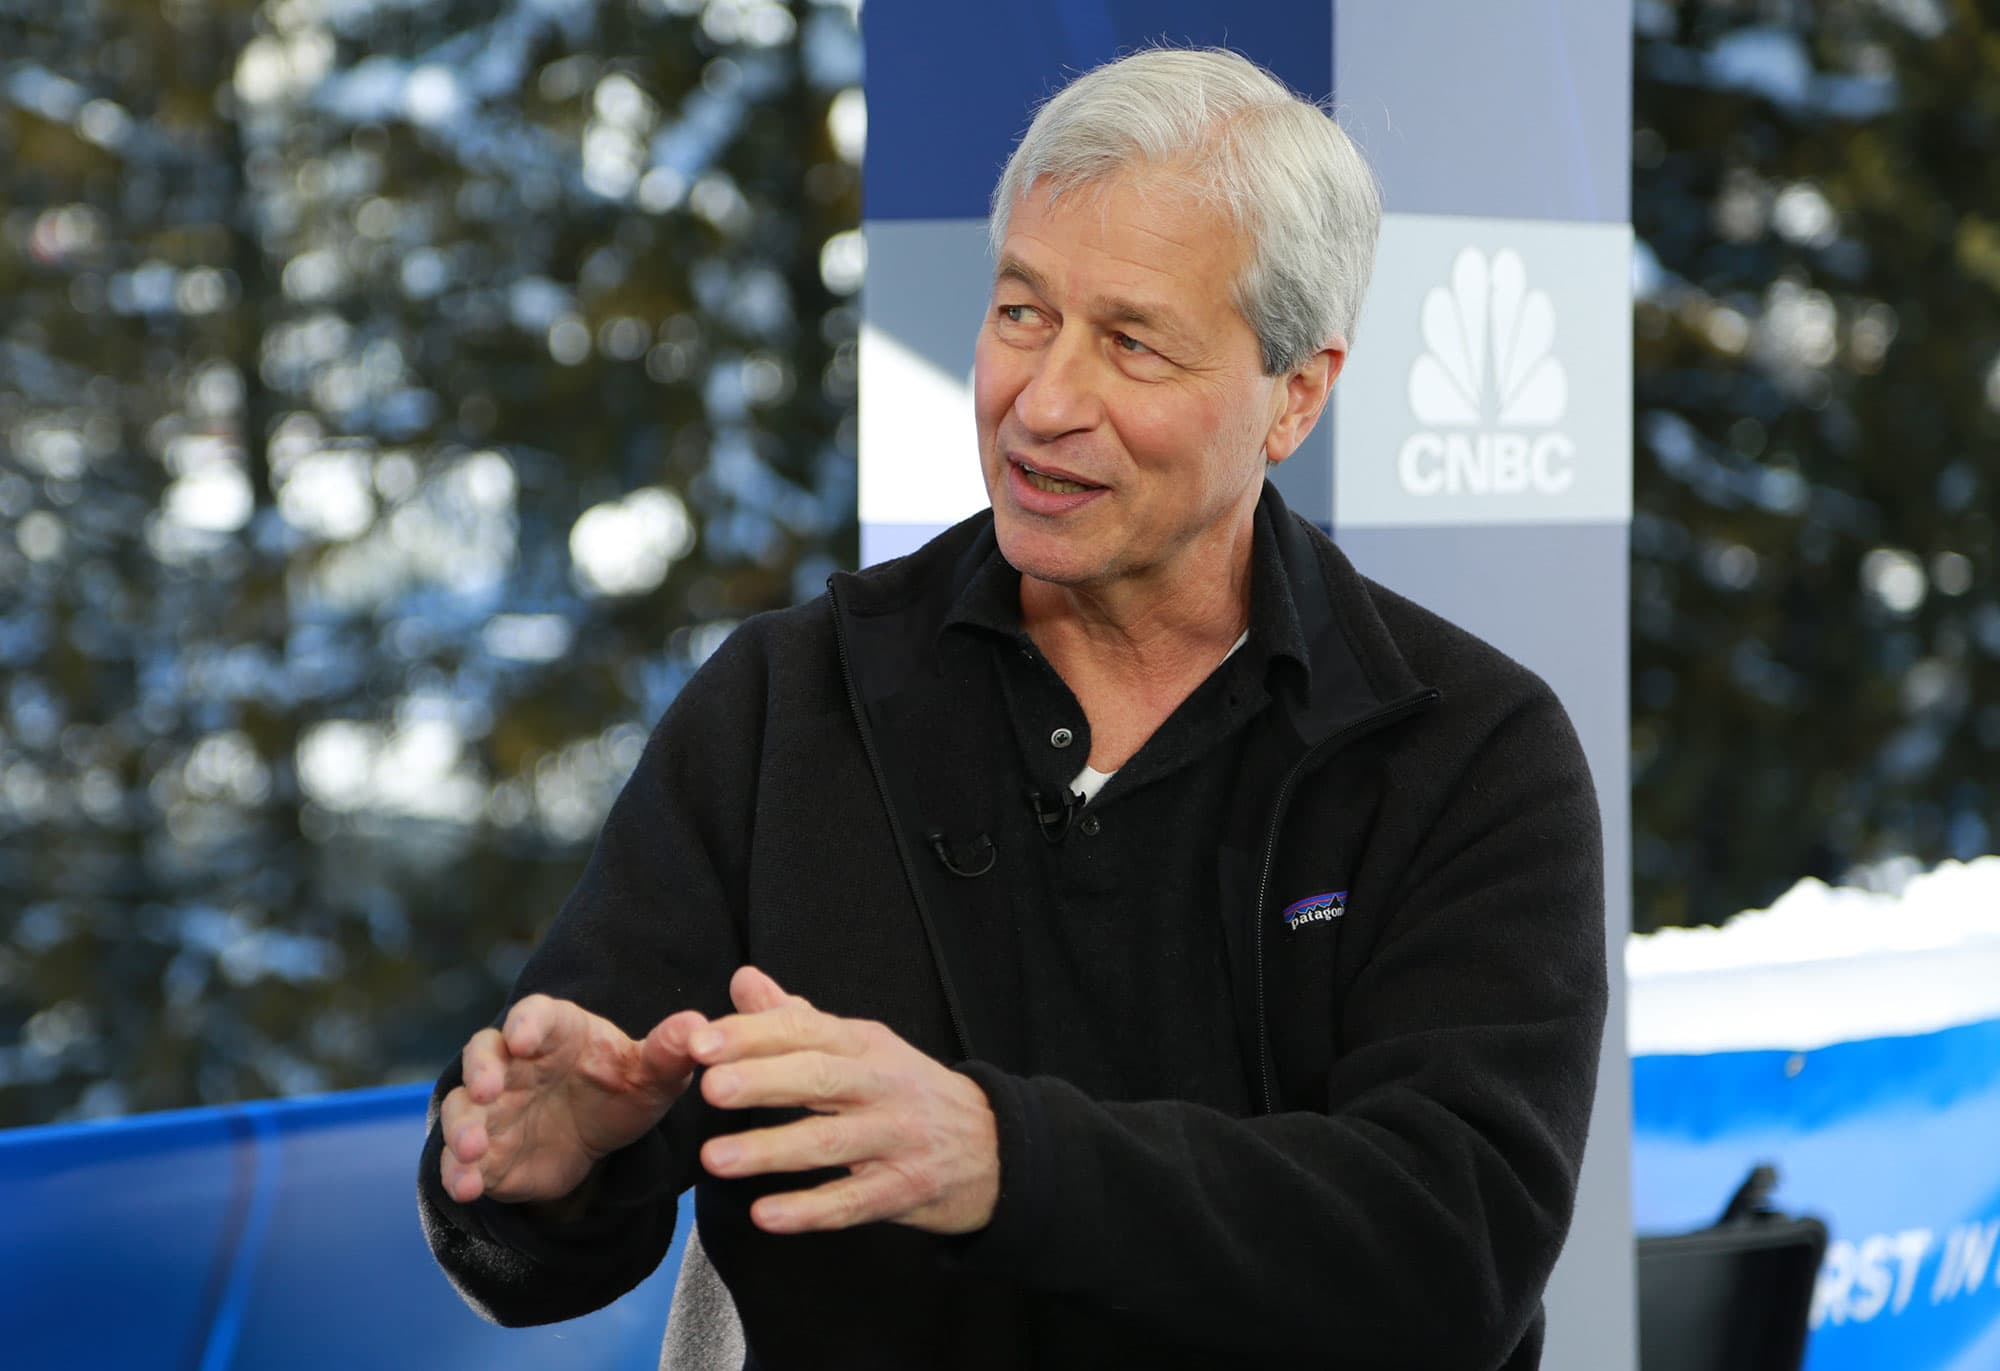 Dimon says the only financial market bubble out there right now is in sovereign debt